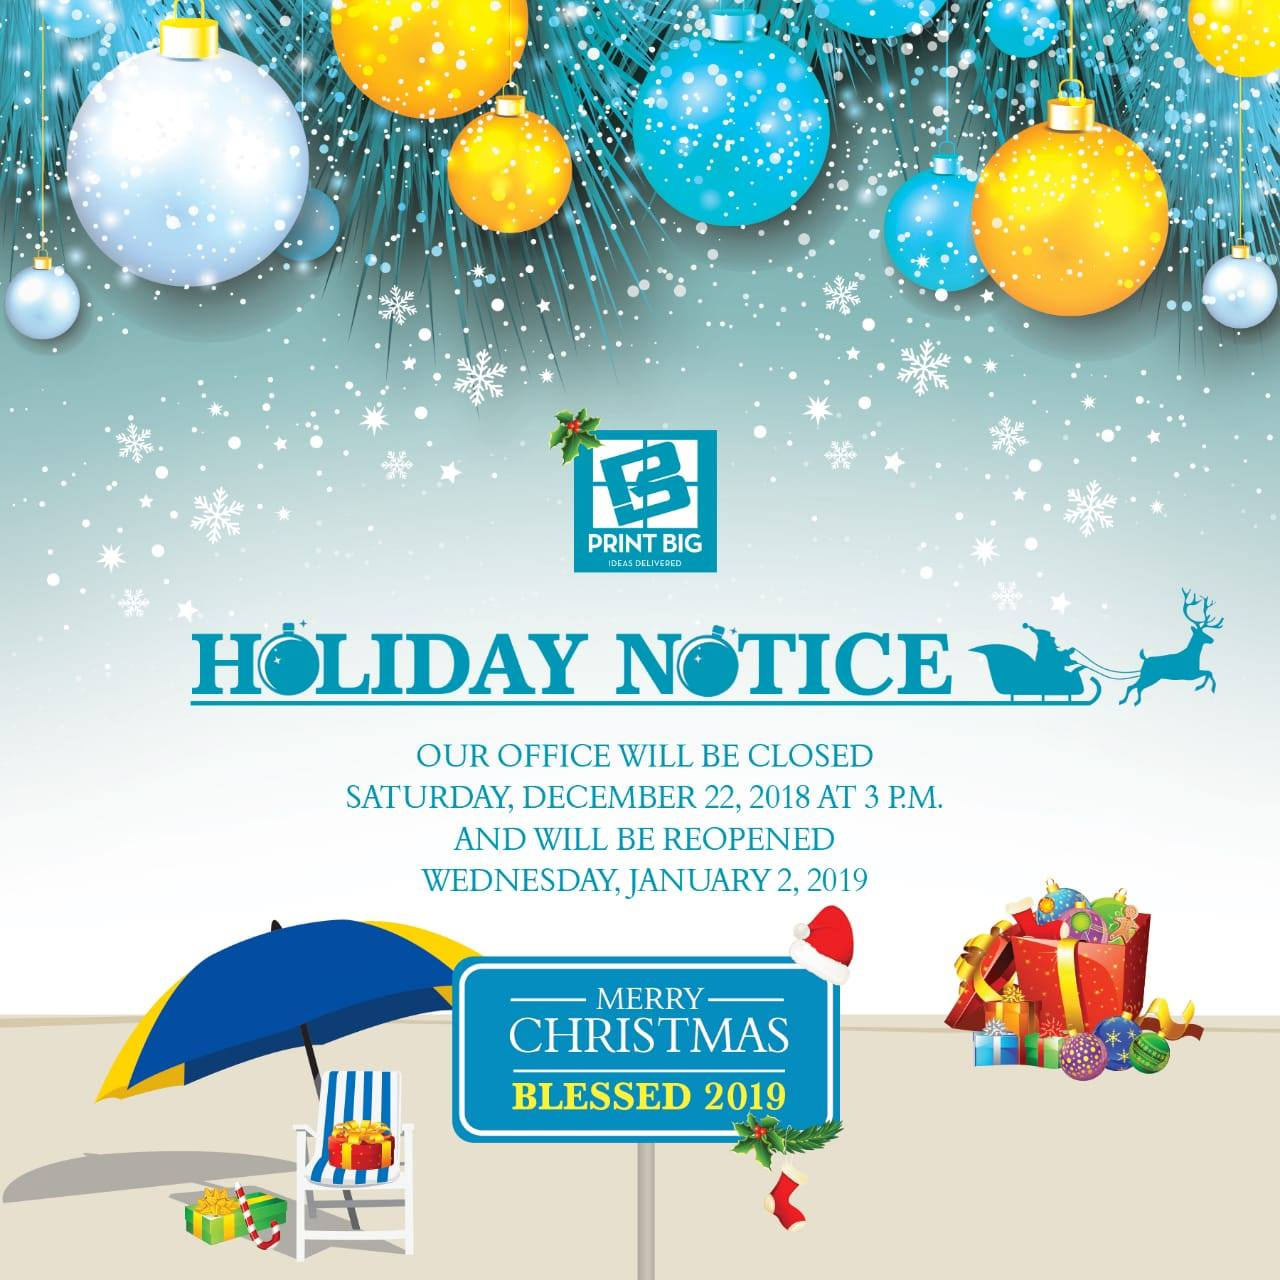 HolidaysNotice Our office will be closed for